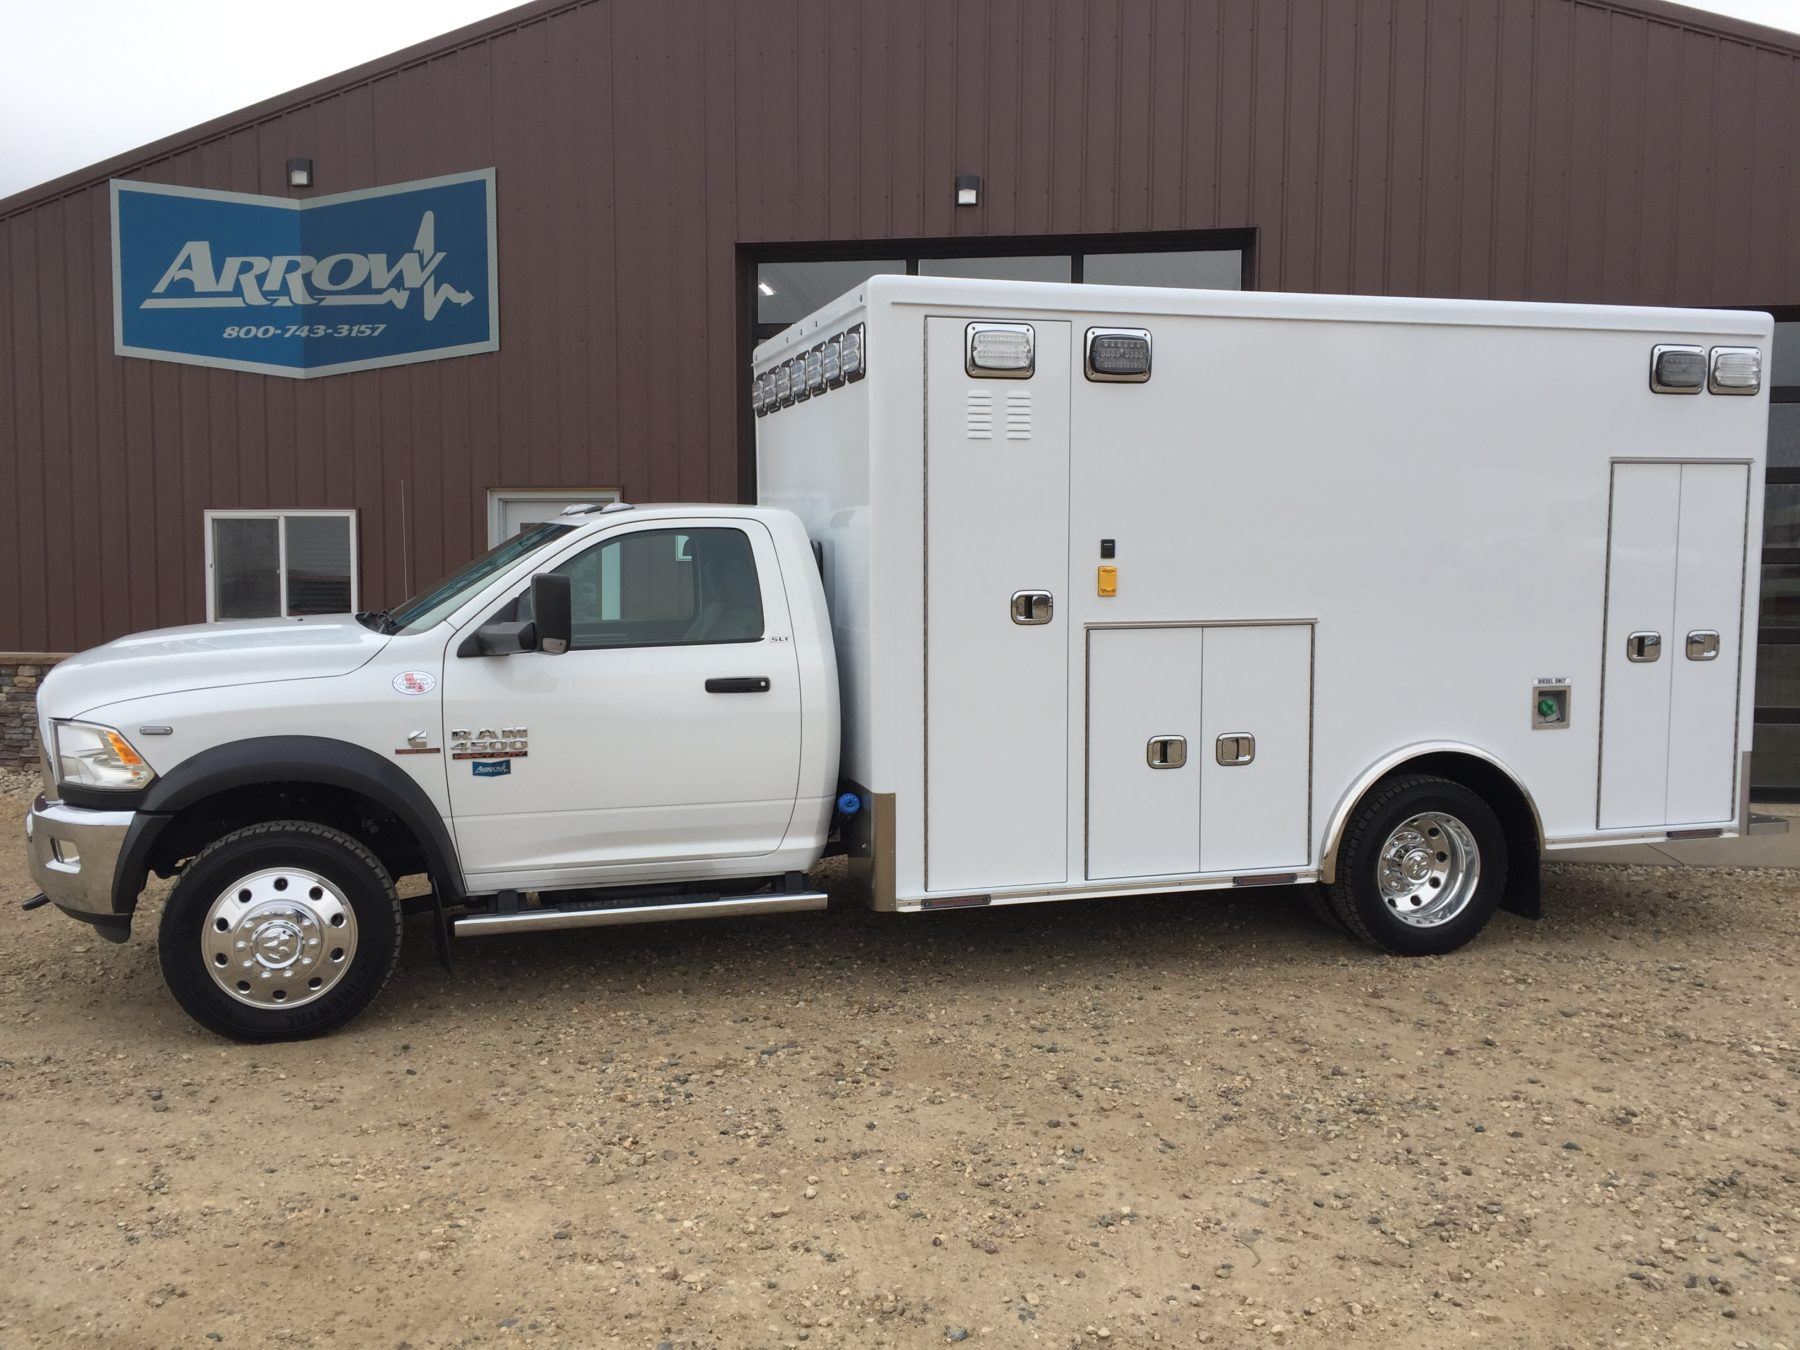 2018 Ram 4500 4x4 Heavy Duty Ambulance For Sale – Picture 1